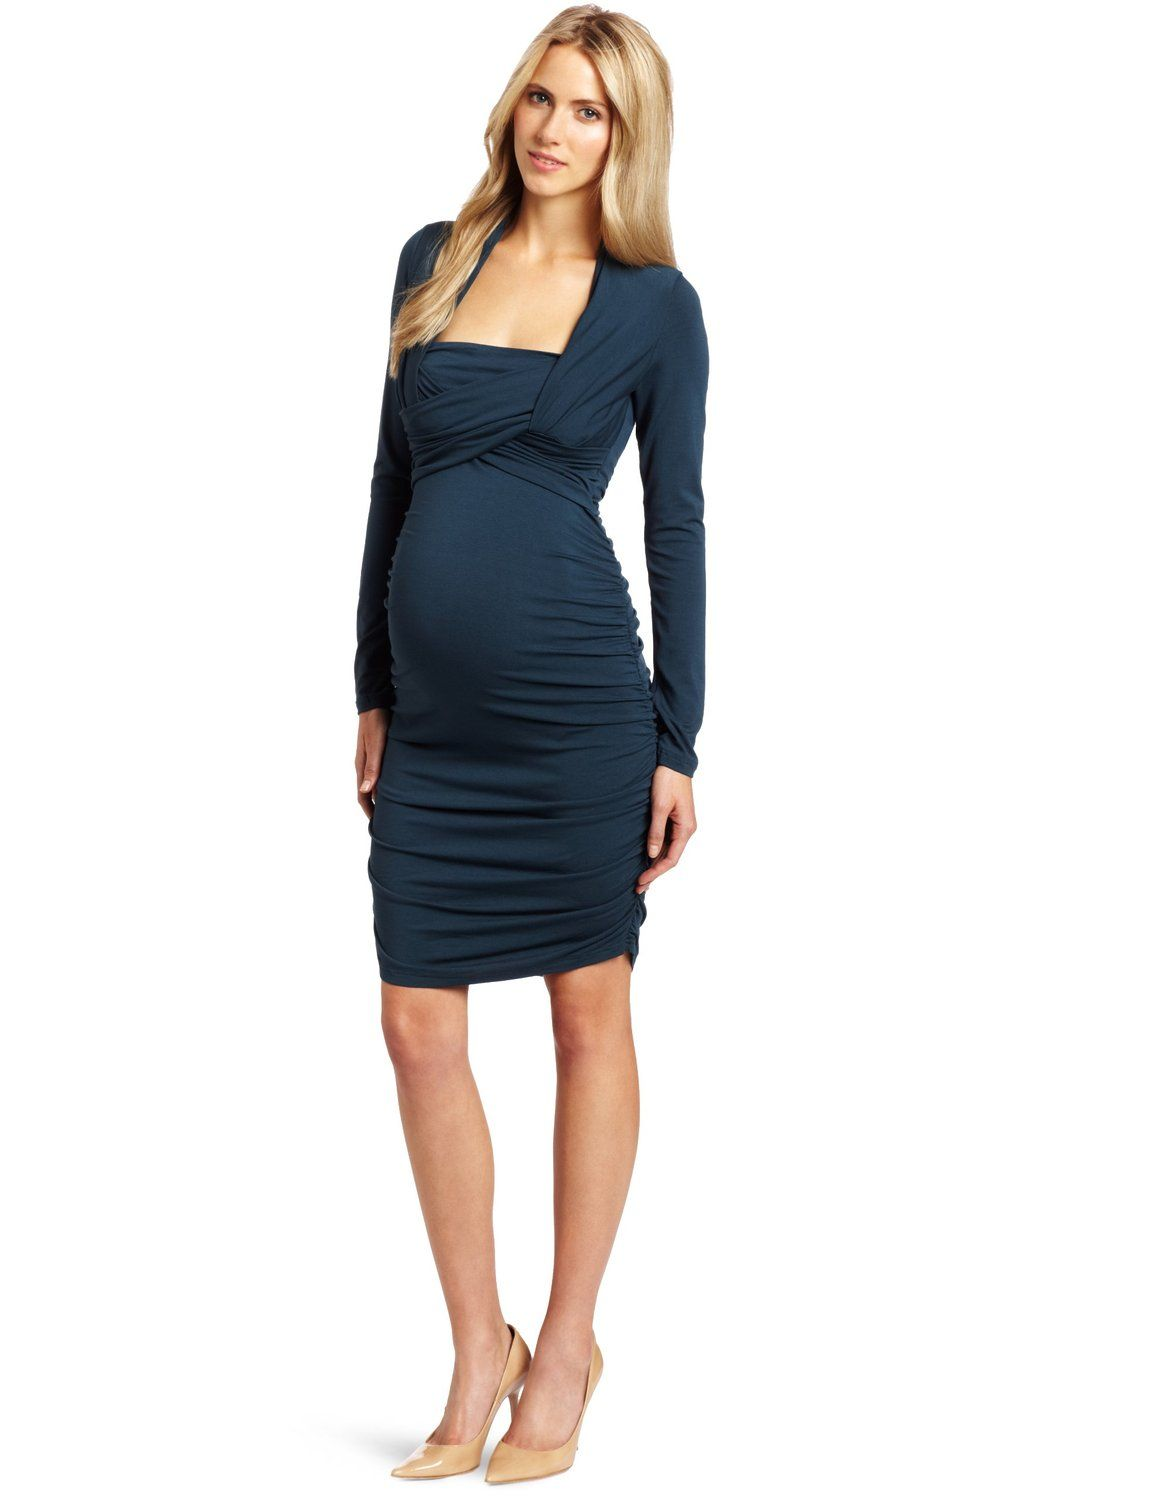 Formal Maternity Dresses UK Sale; Maternity Dresses for Wedding ...